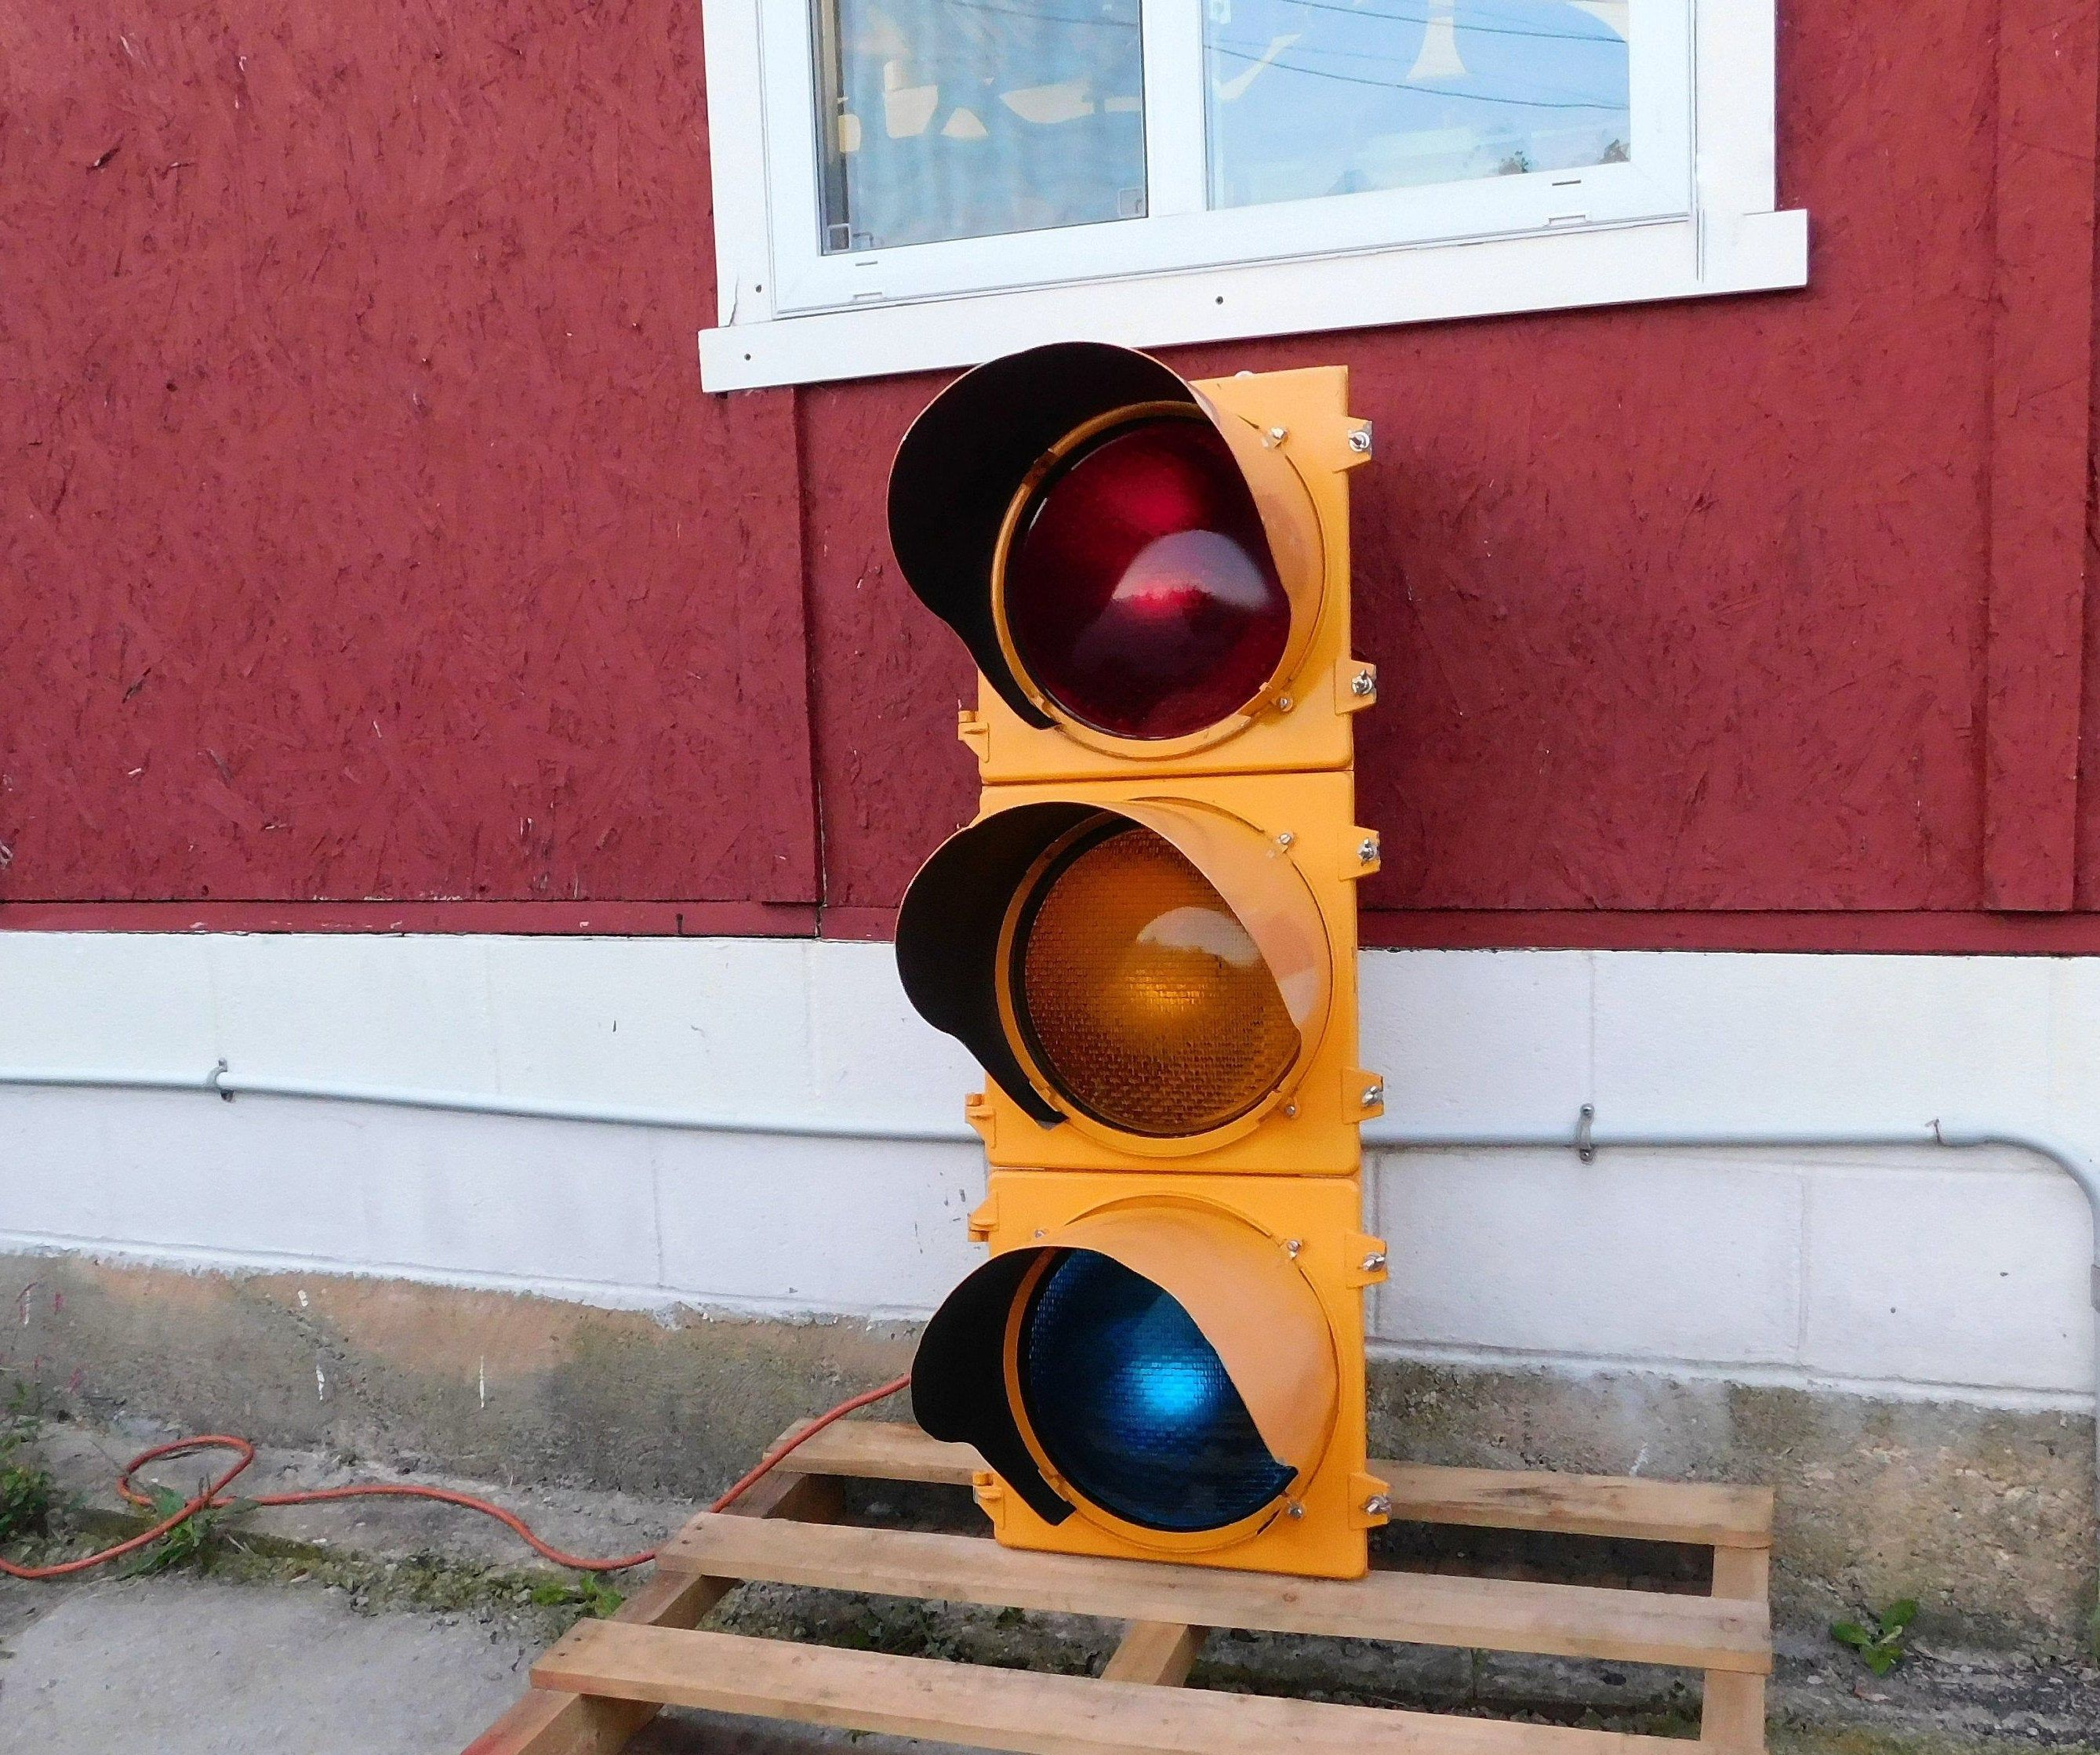 Large Traffic Signal Light Real Traffic Light Indicators Control Corp Industrial Auto Decor Traffic Light Traffic Signal Light Covers